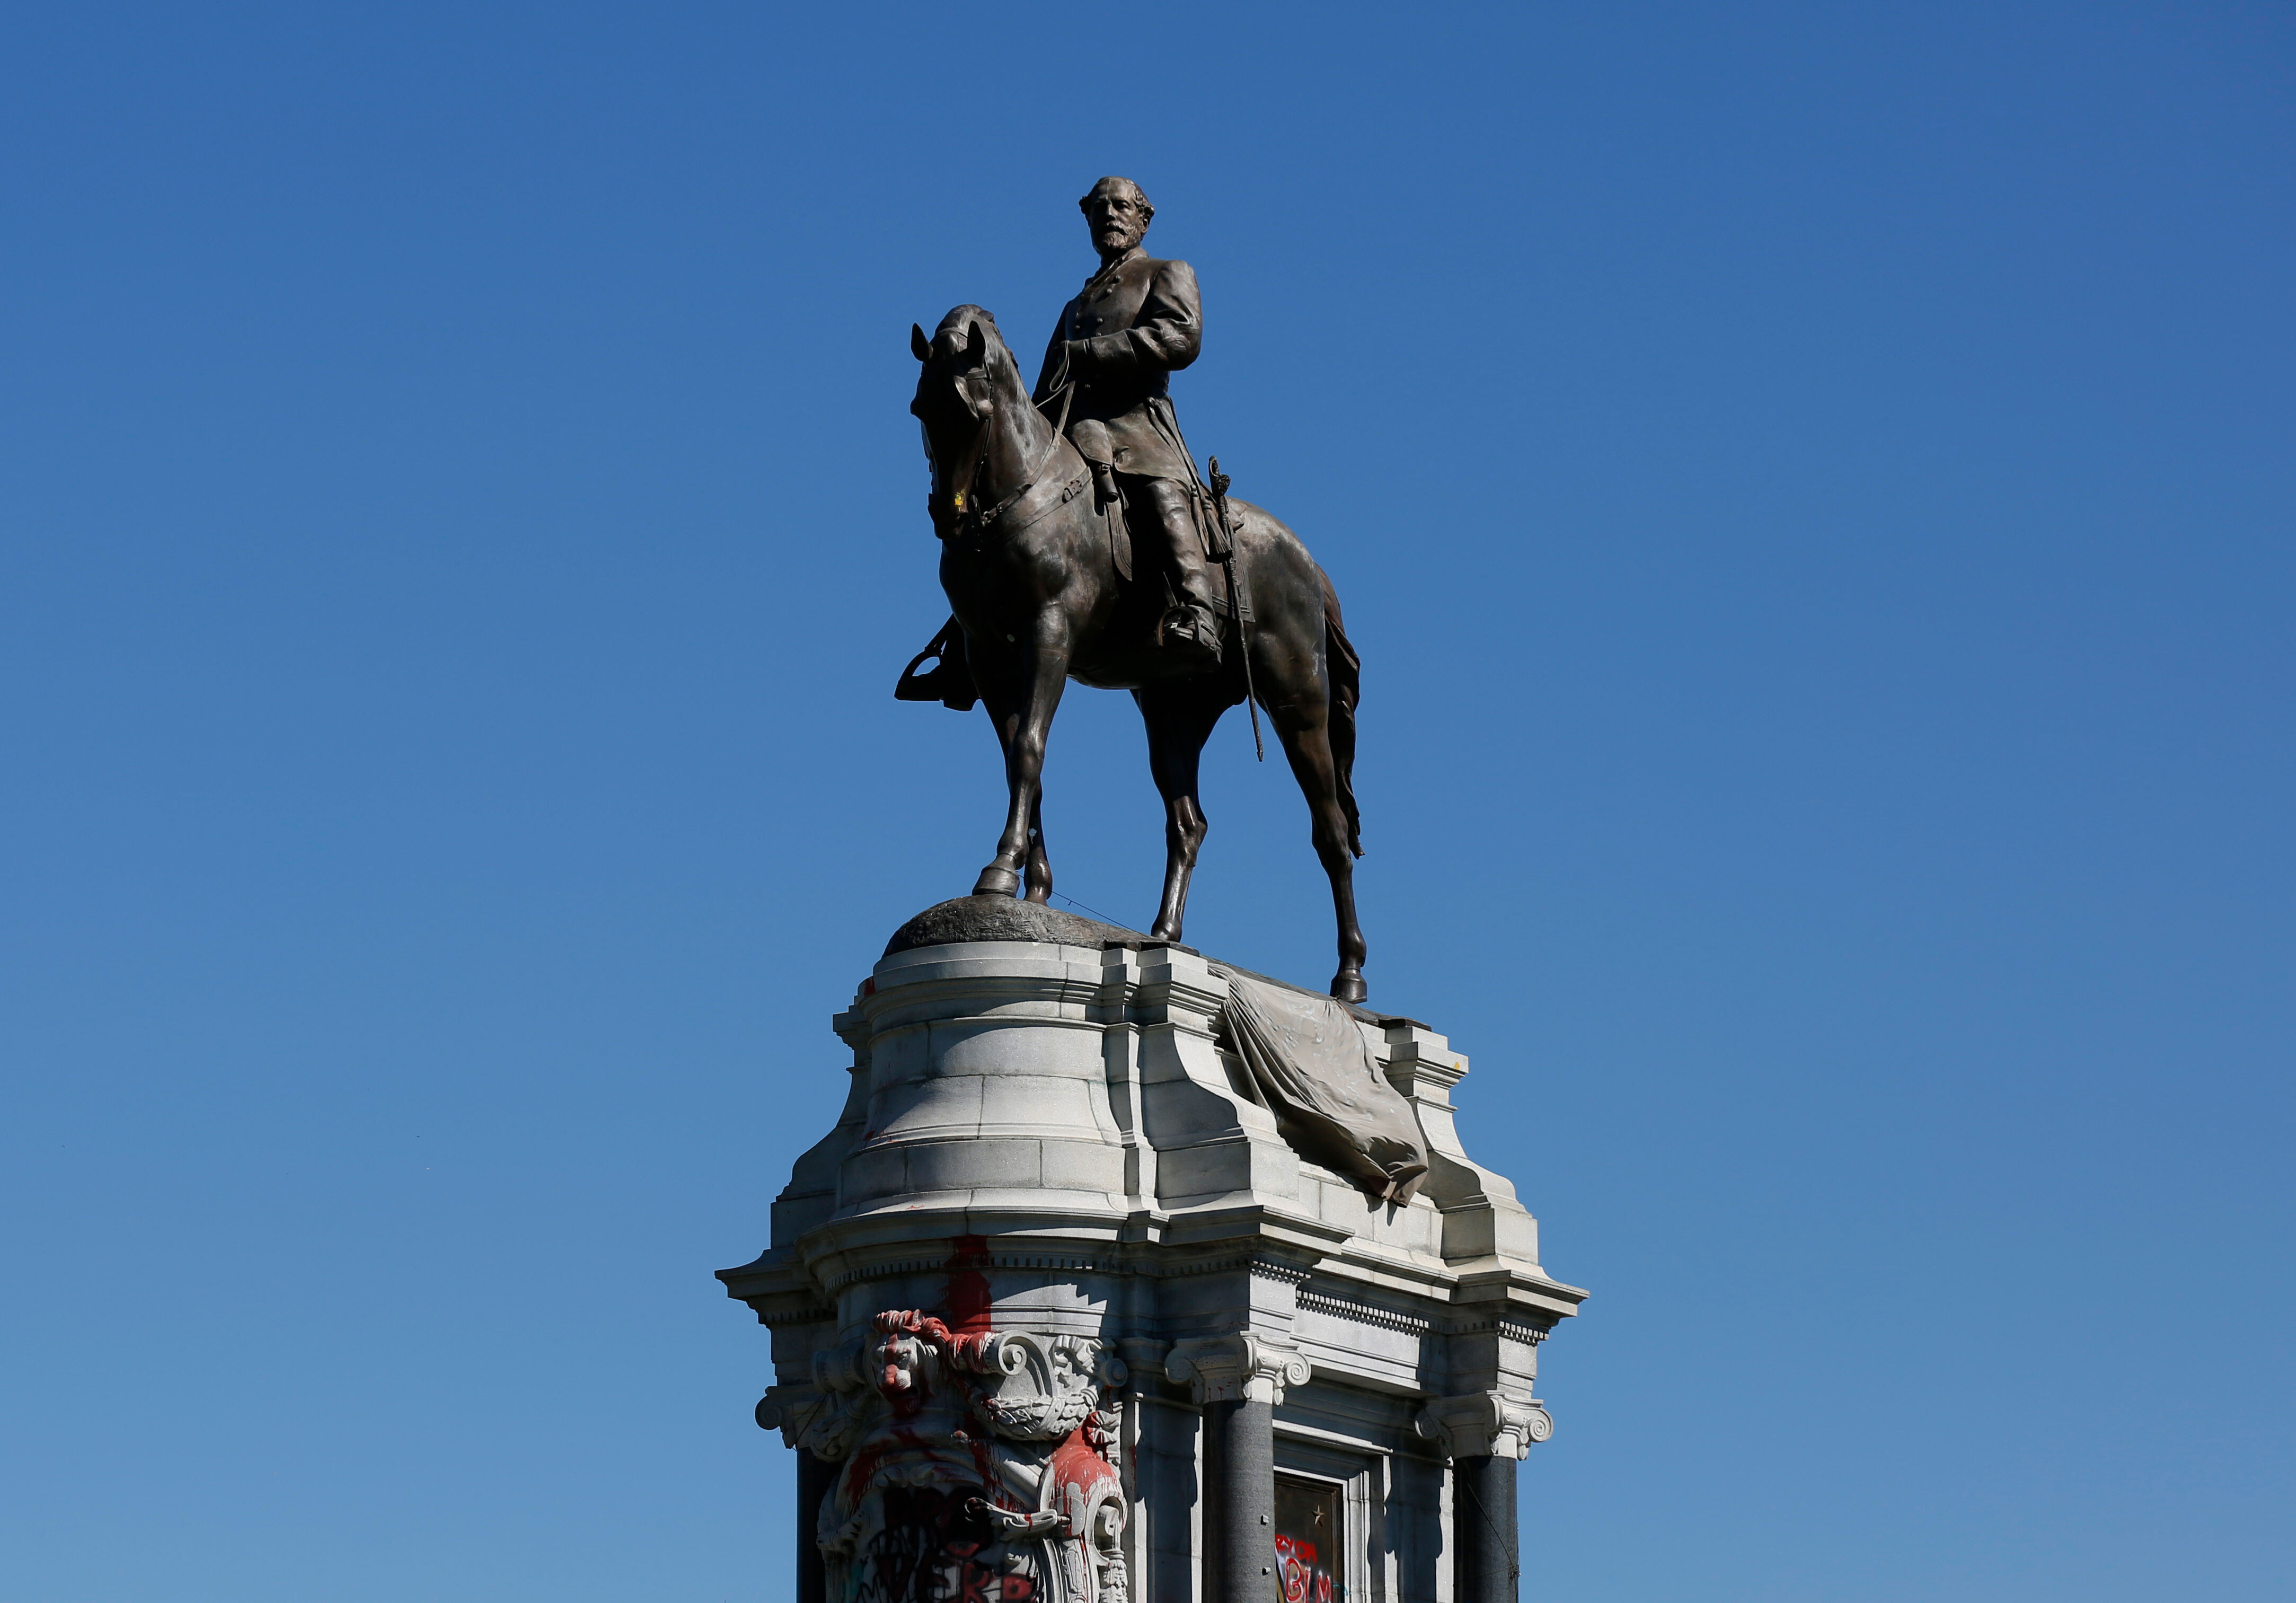 Robert E. Lee statue in Virginia's capital will come down Wednesday, officials say